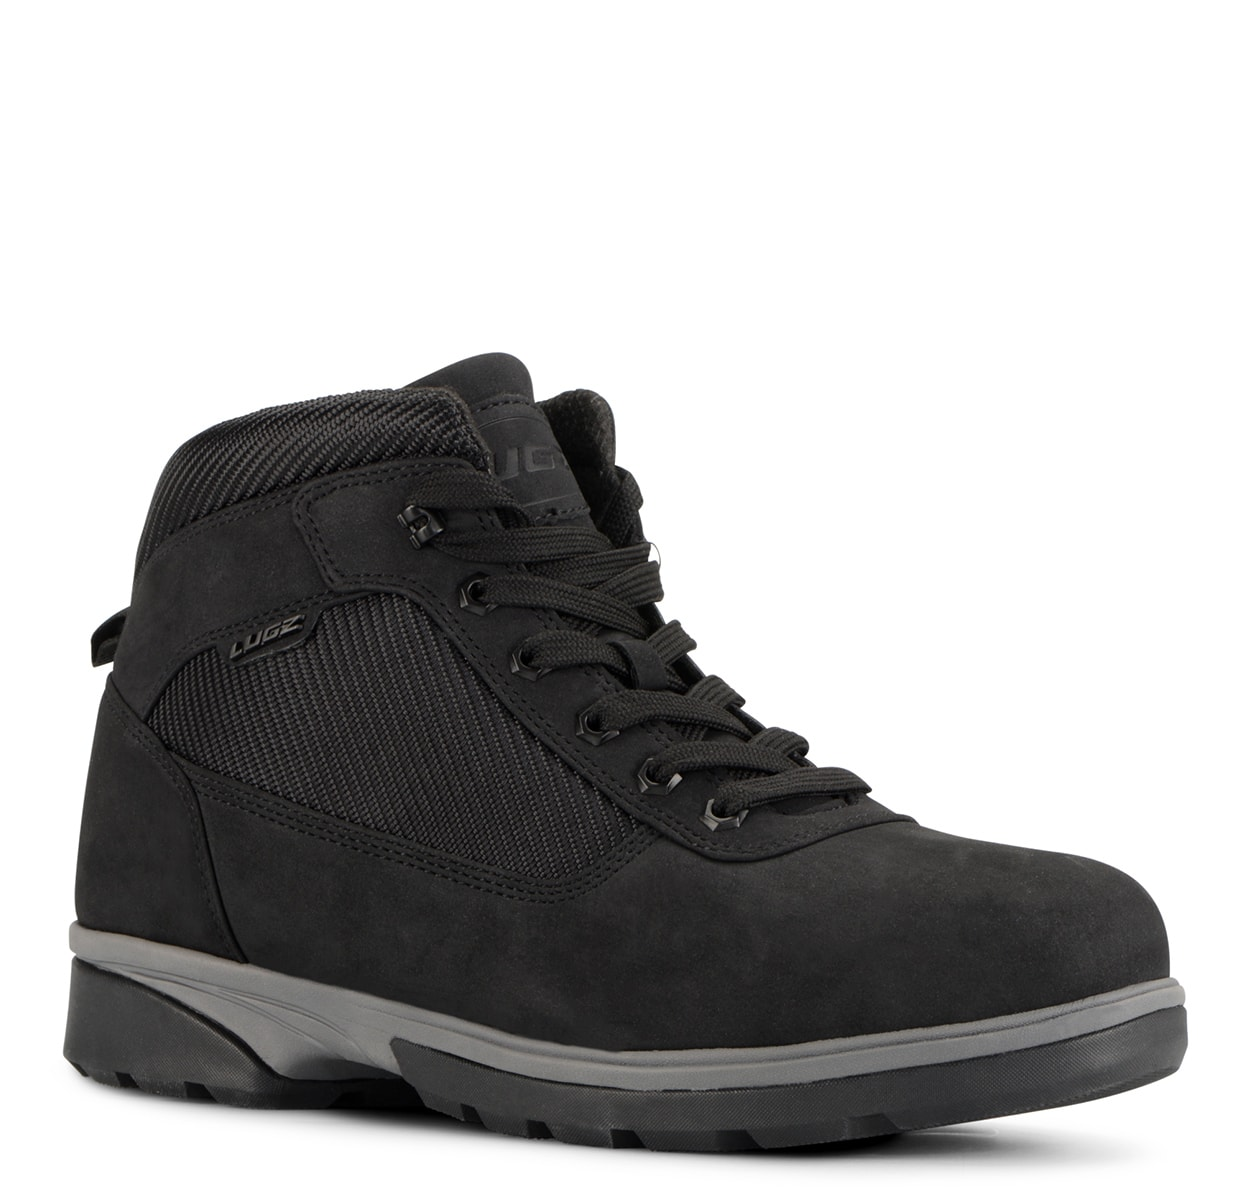 Men's Zeolite Mid Chukka Boot (Choose Your Color: Black/Charcoal, Choose Your Size: 10.0)